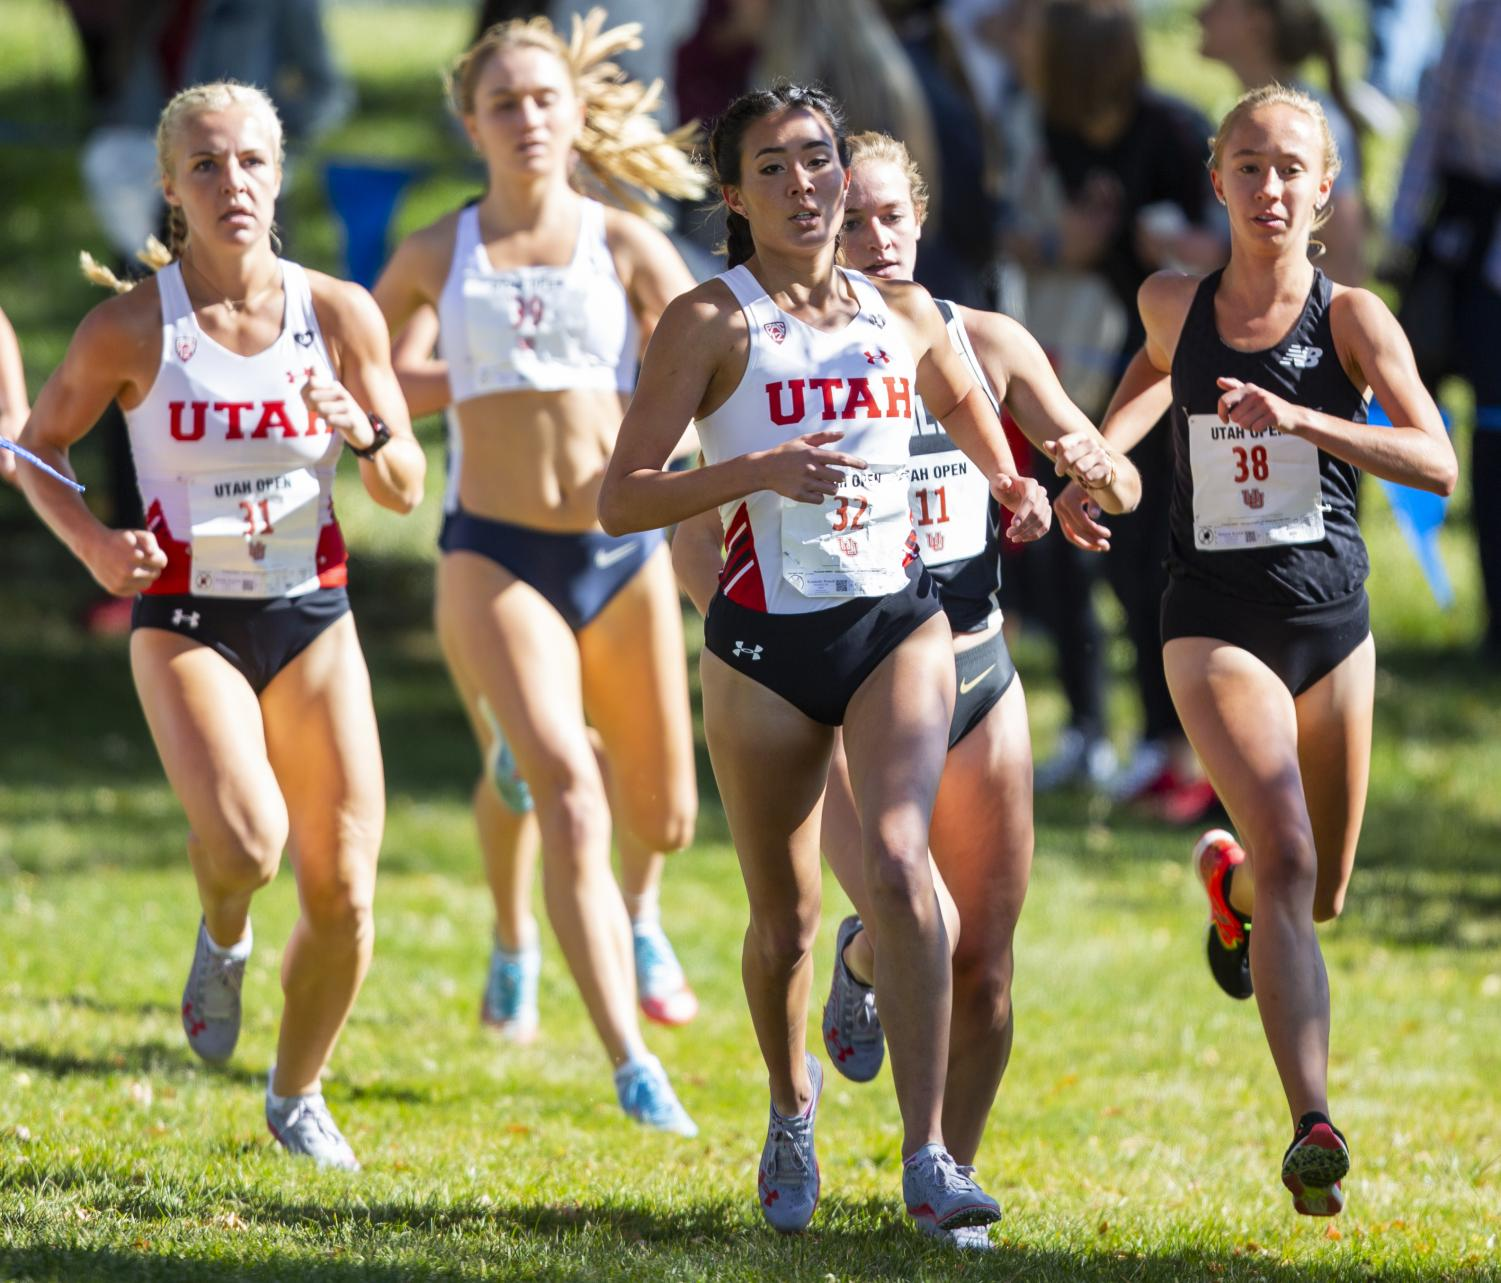 University of Utah sophomore Kennedy Powell (32) during the Women's 5K run at the Utah Open in an NCAA Cross Country Meet at Sunnyside Park in Salt Lake City, UT on Friday October 25, 2019.(Photo by Curtis Lin   Daily Utah Chronicle)